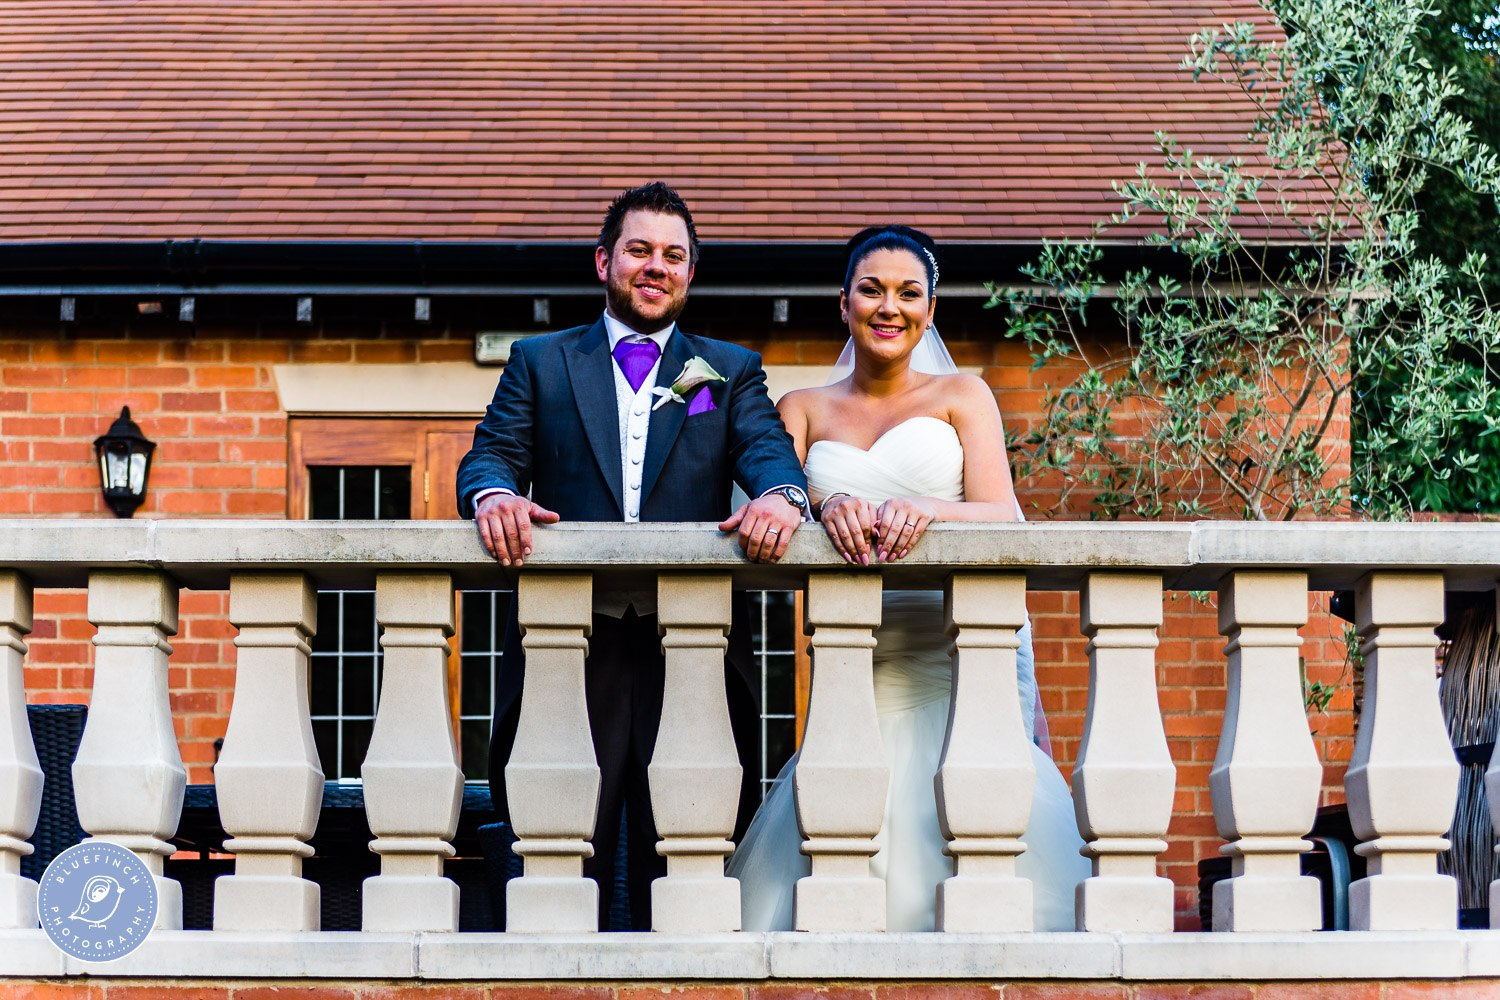 Ryan & Hayley's Wedding Photography At Nuthurst Grange